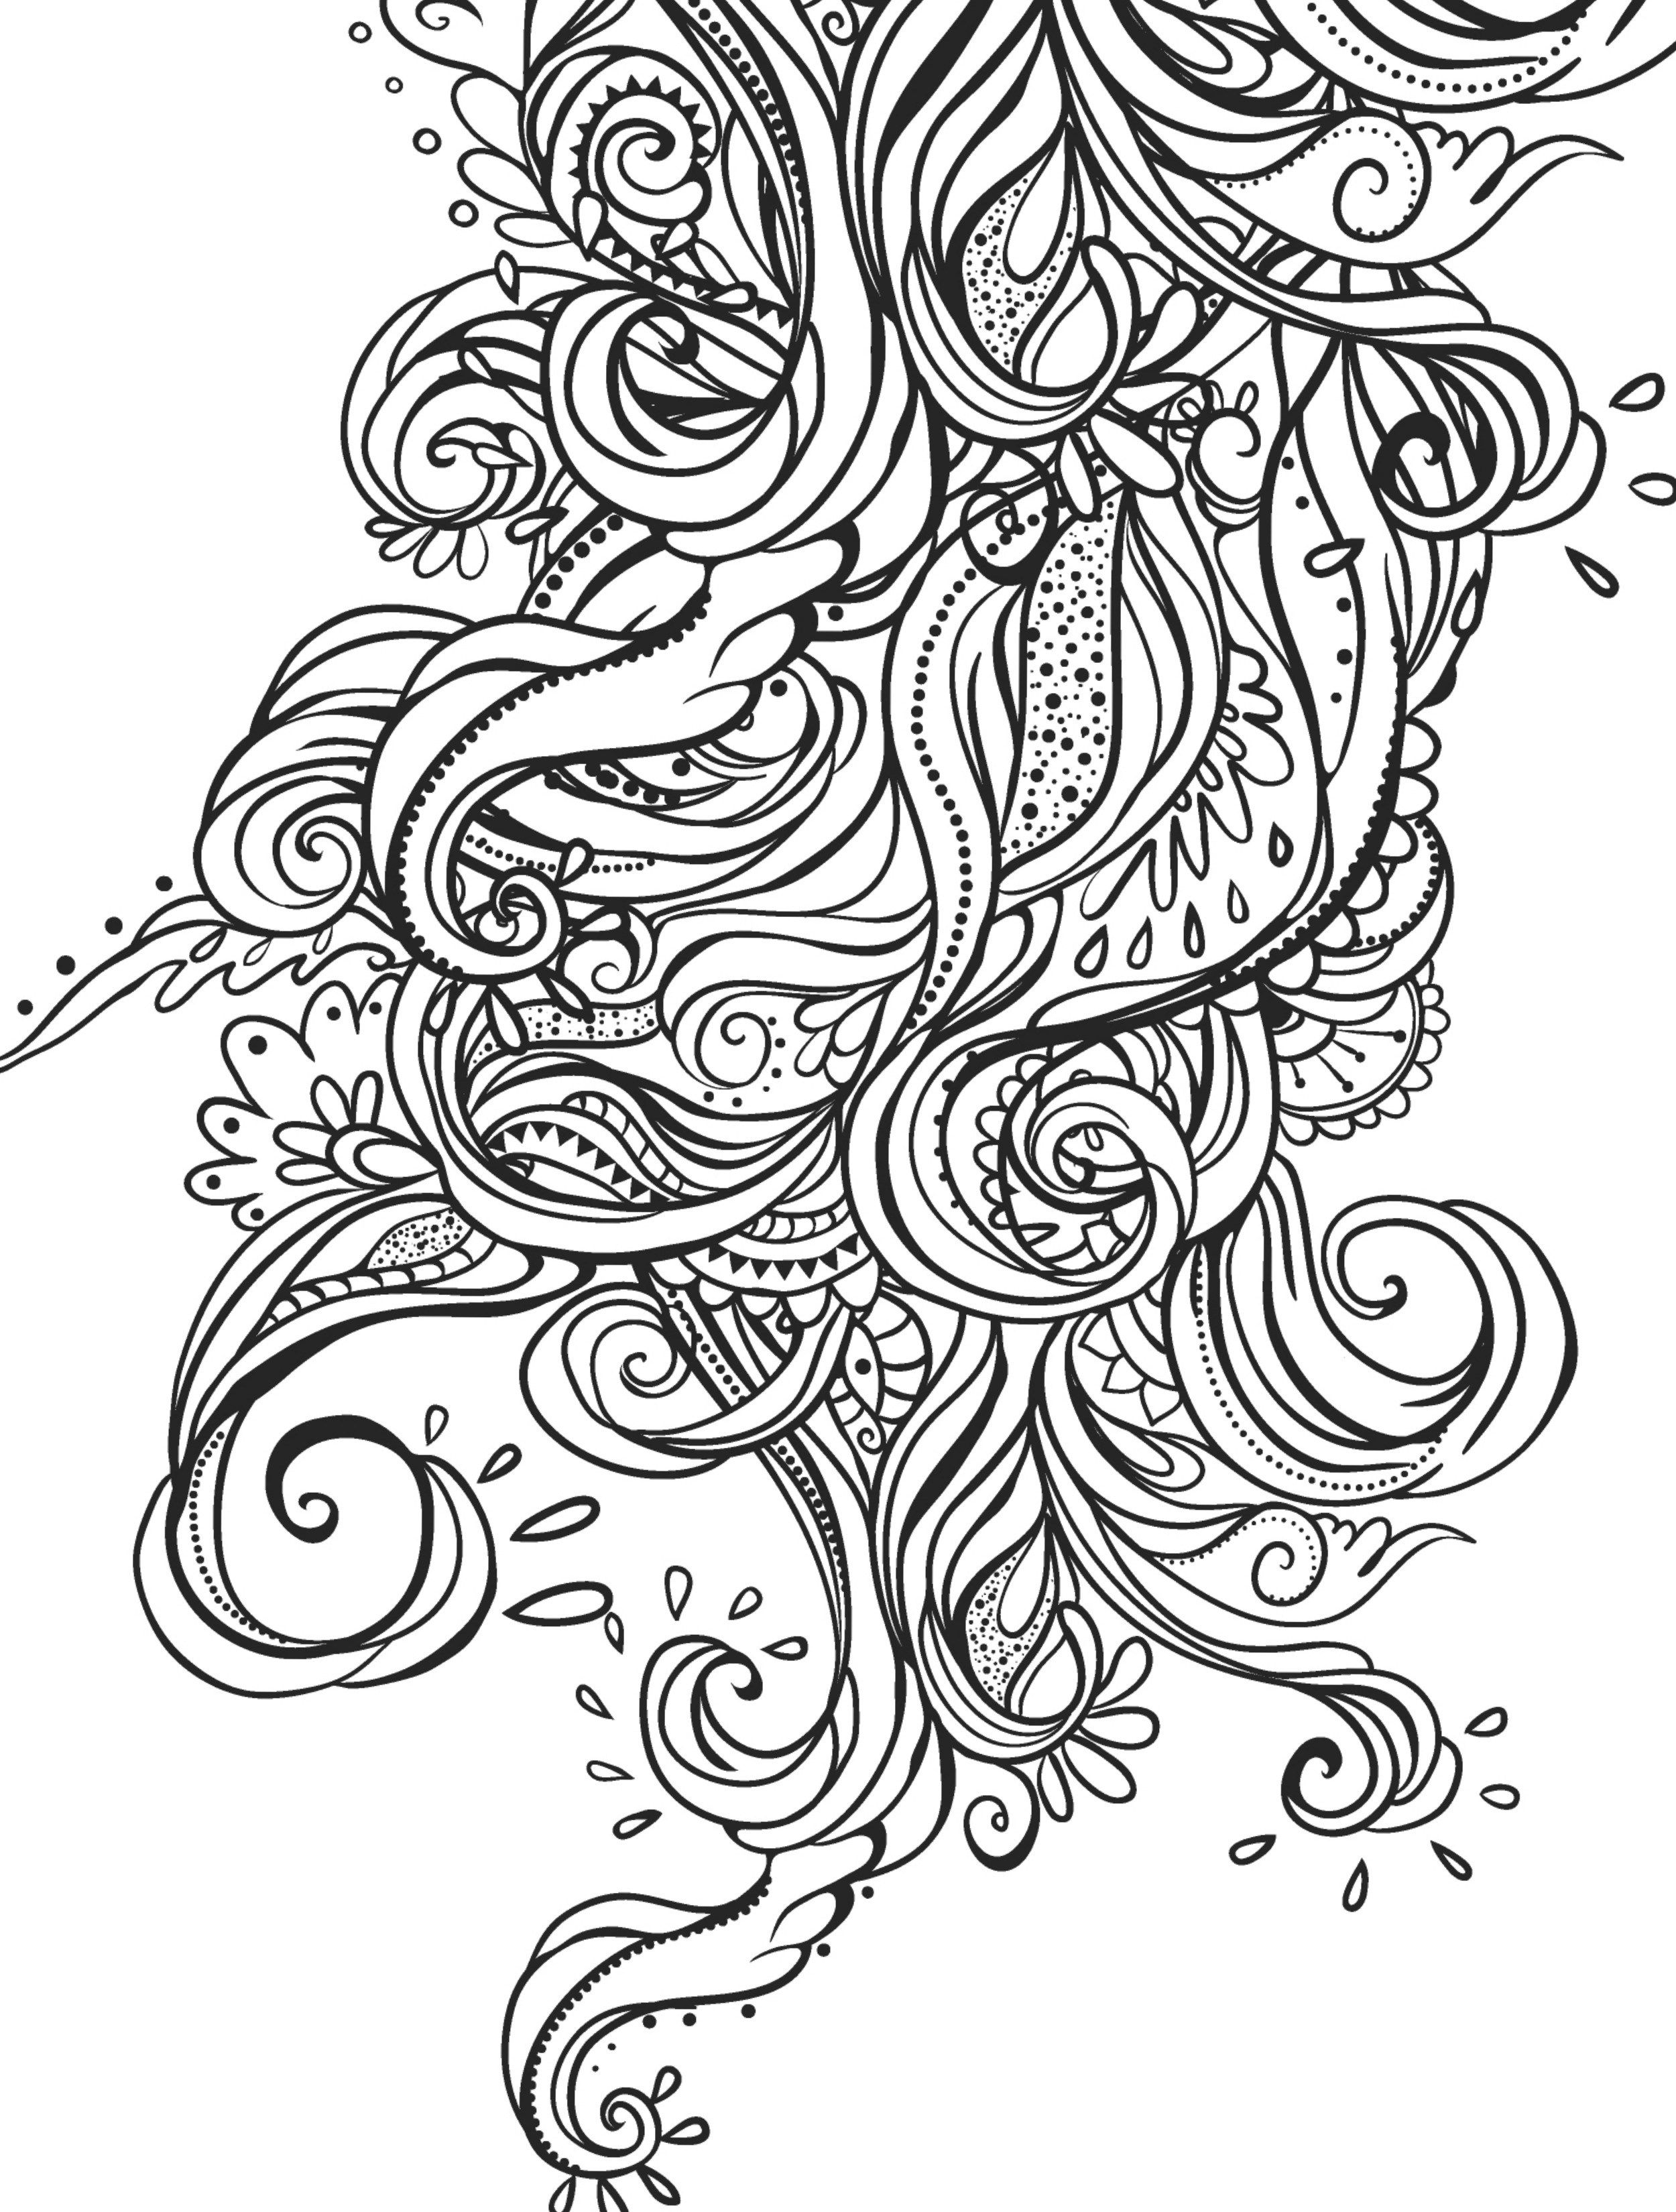 15 CRAZY Busy Coloring Pages for Adults Easy coloring